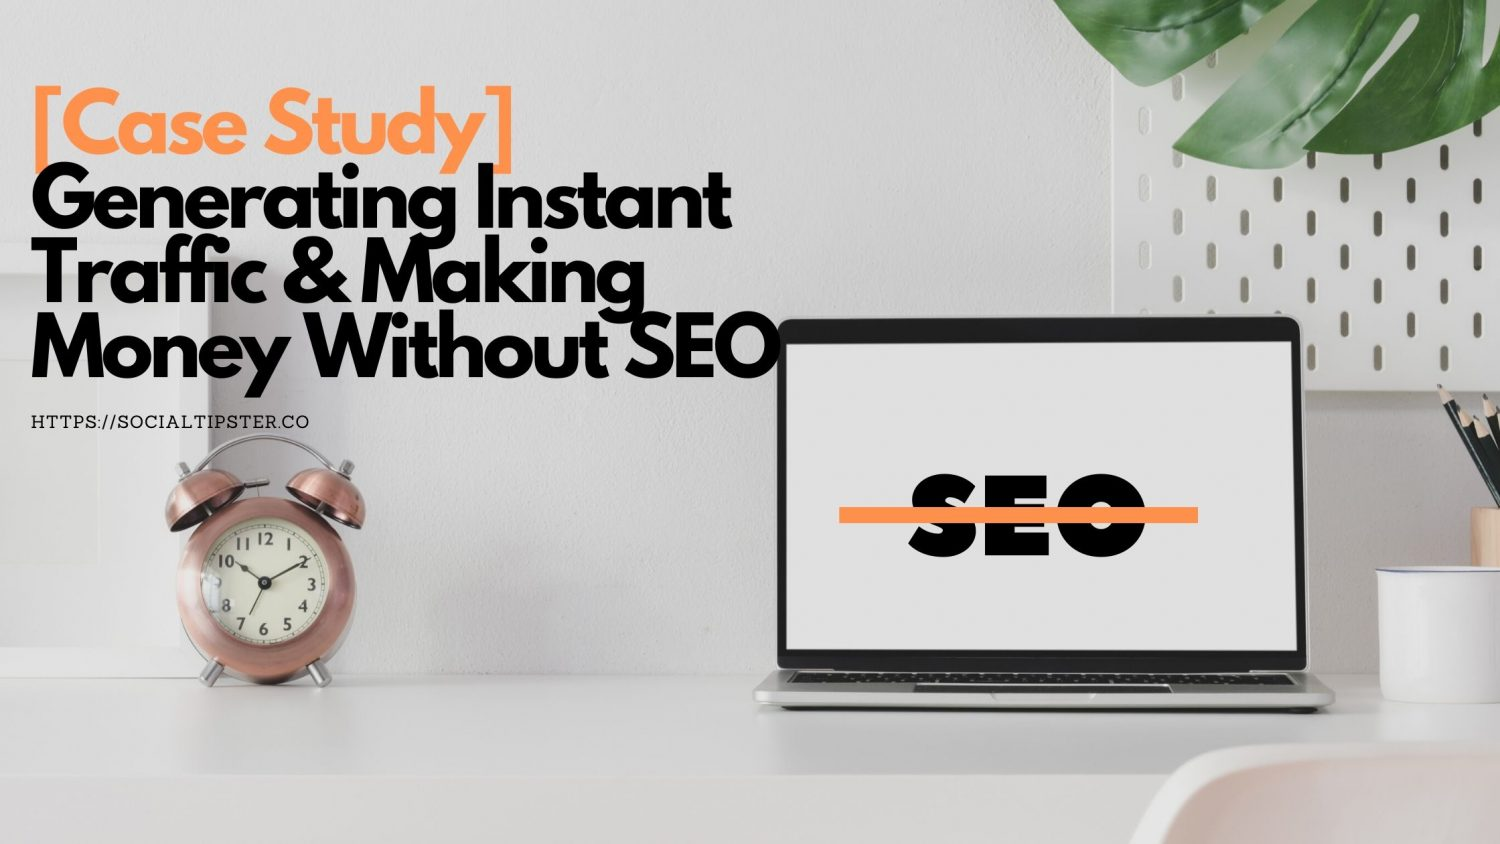 Generating Instant Traffic & Making Money Without SEO